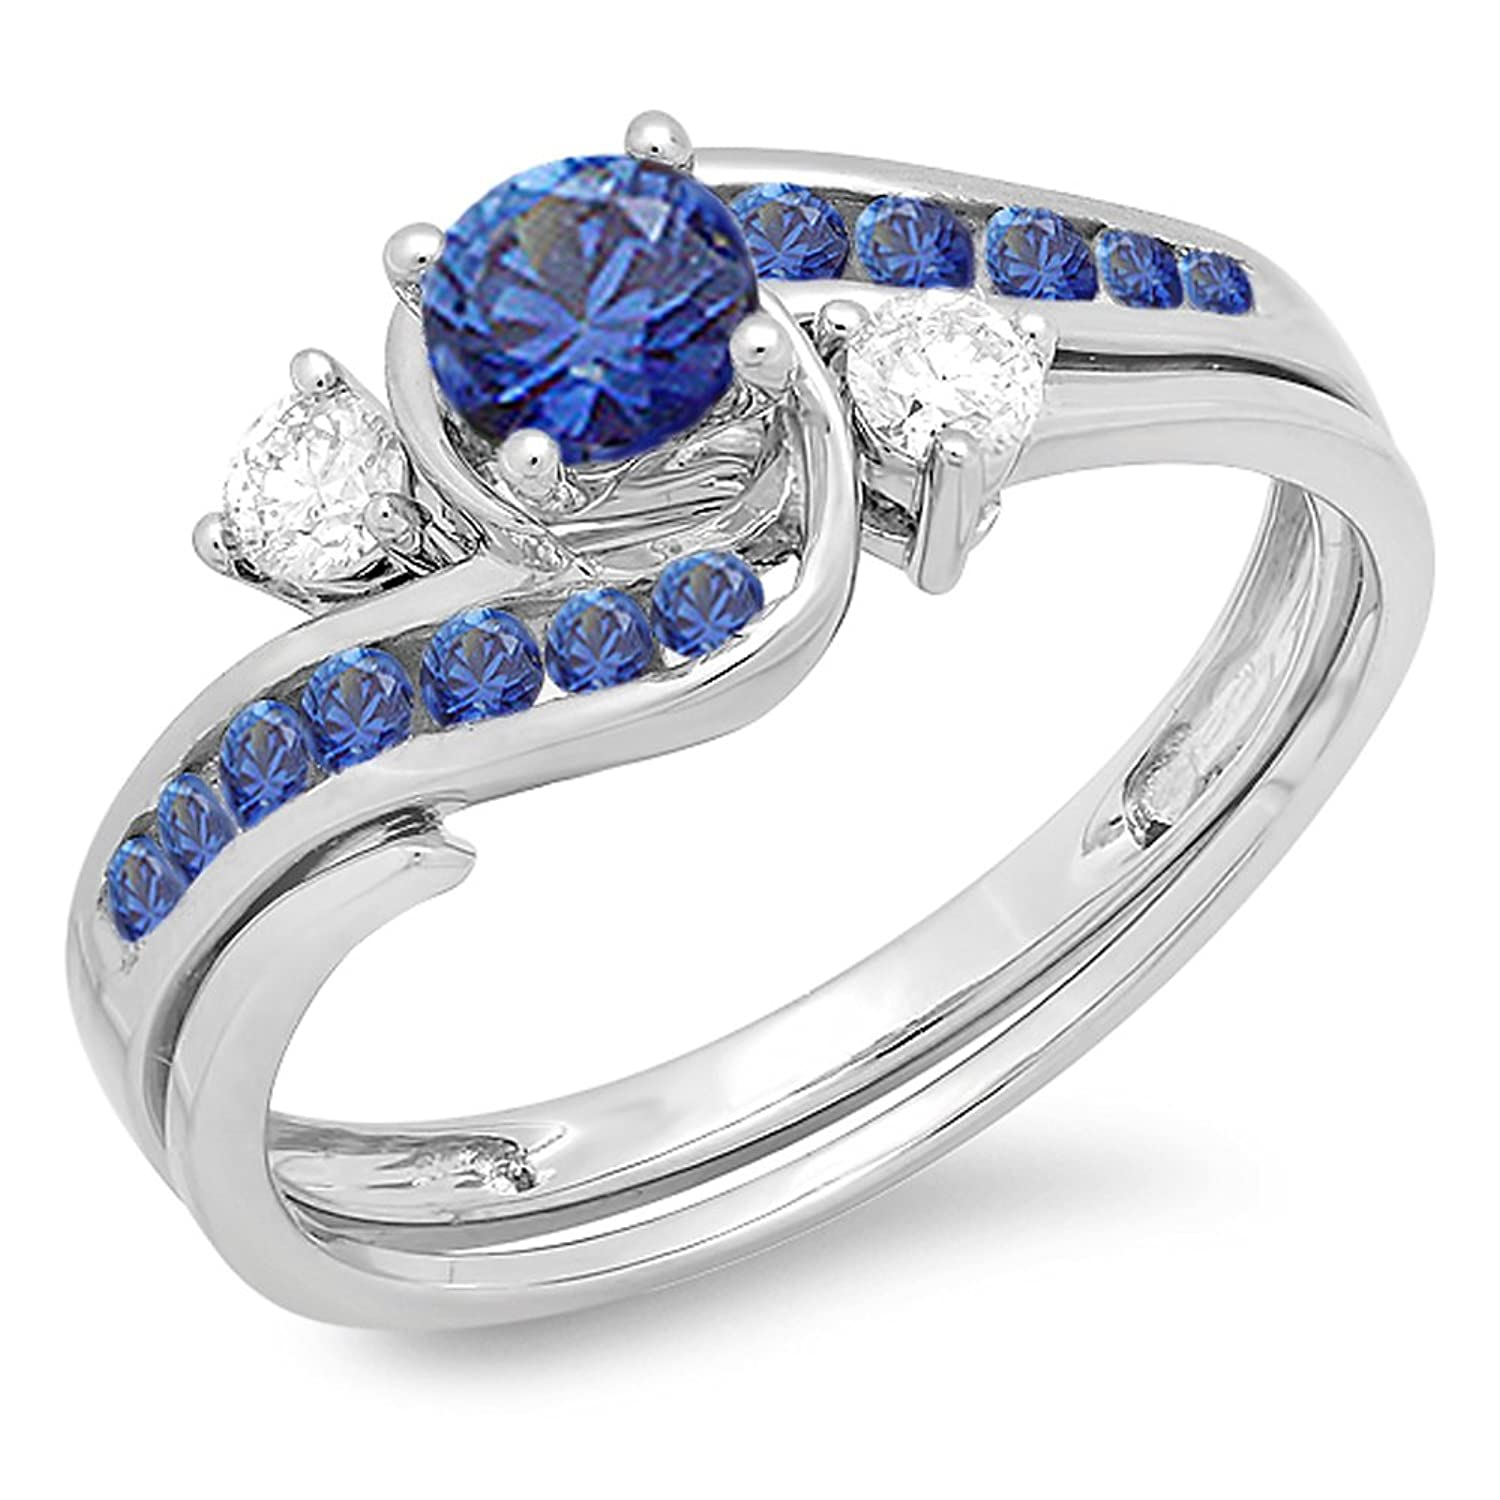 diamond collections rings ring white venetian wedding two stone jewelers and blue products